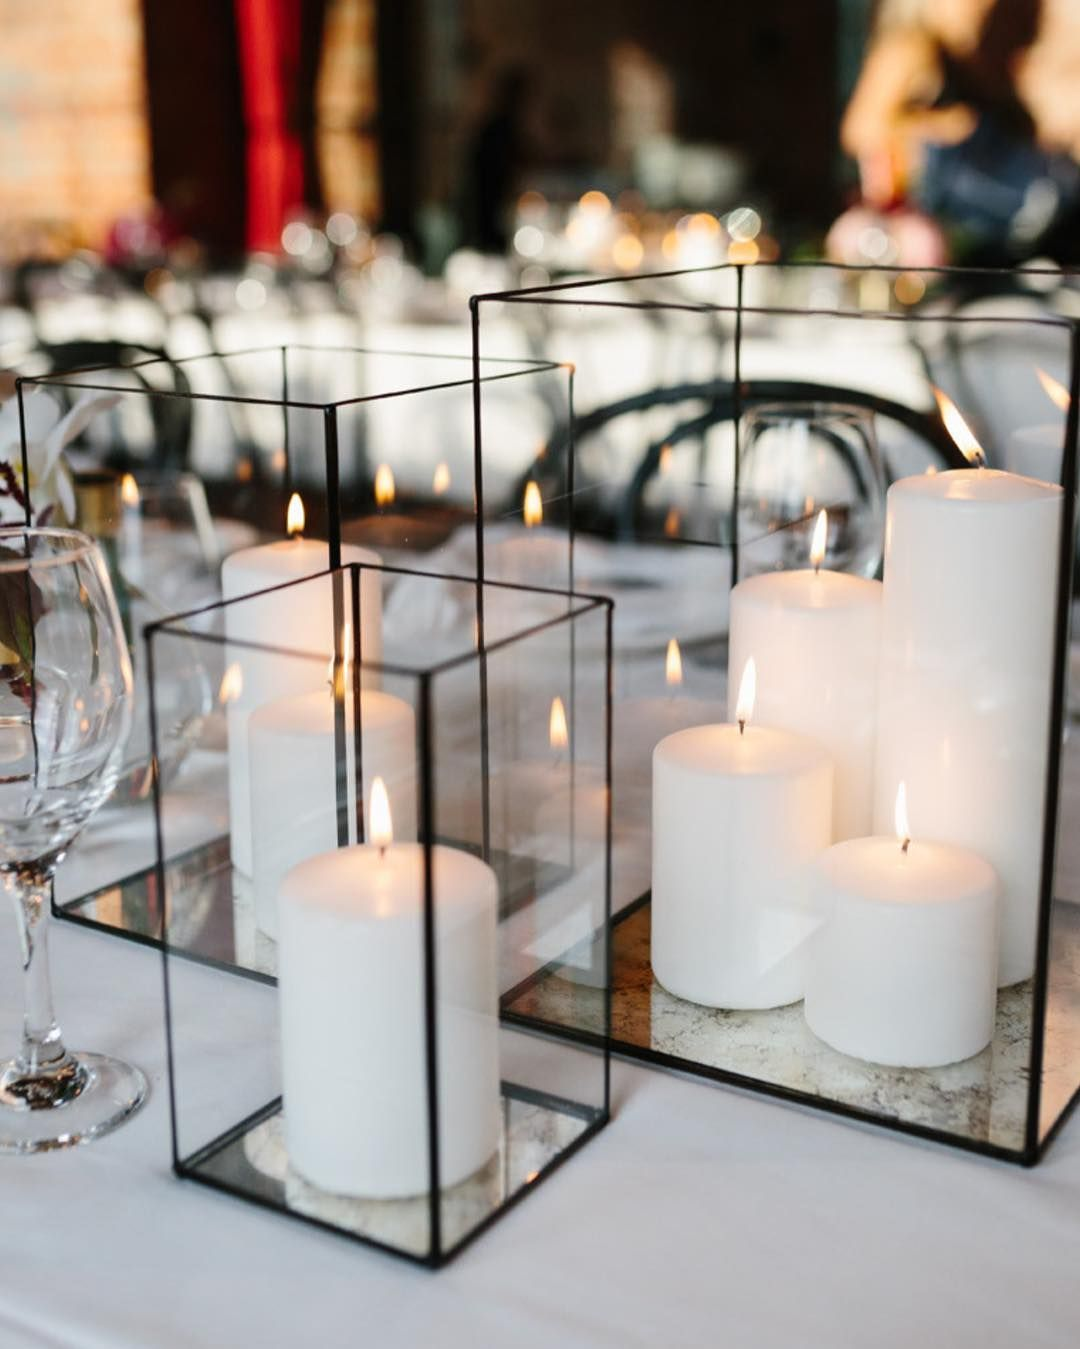 Multiple Candle Lantern Inspo Black Candles Too Our Black Lanterns We Re Handmade With An Candle Centerpieces Black Candle Wedding Black Candle Centerpieces